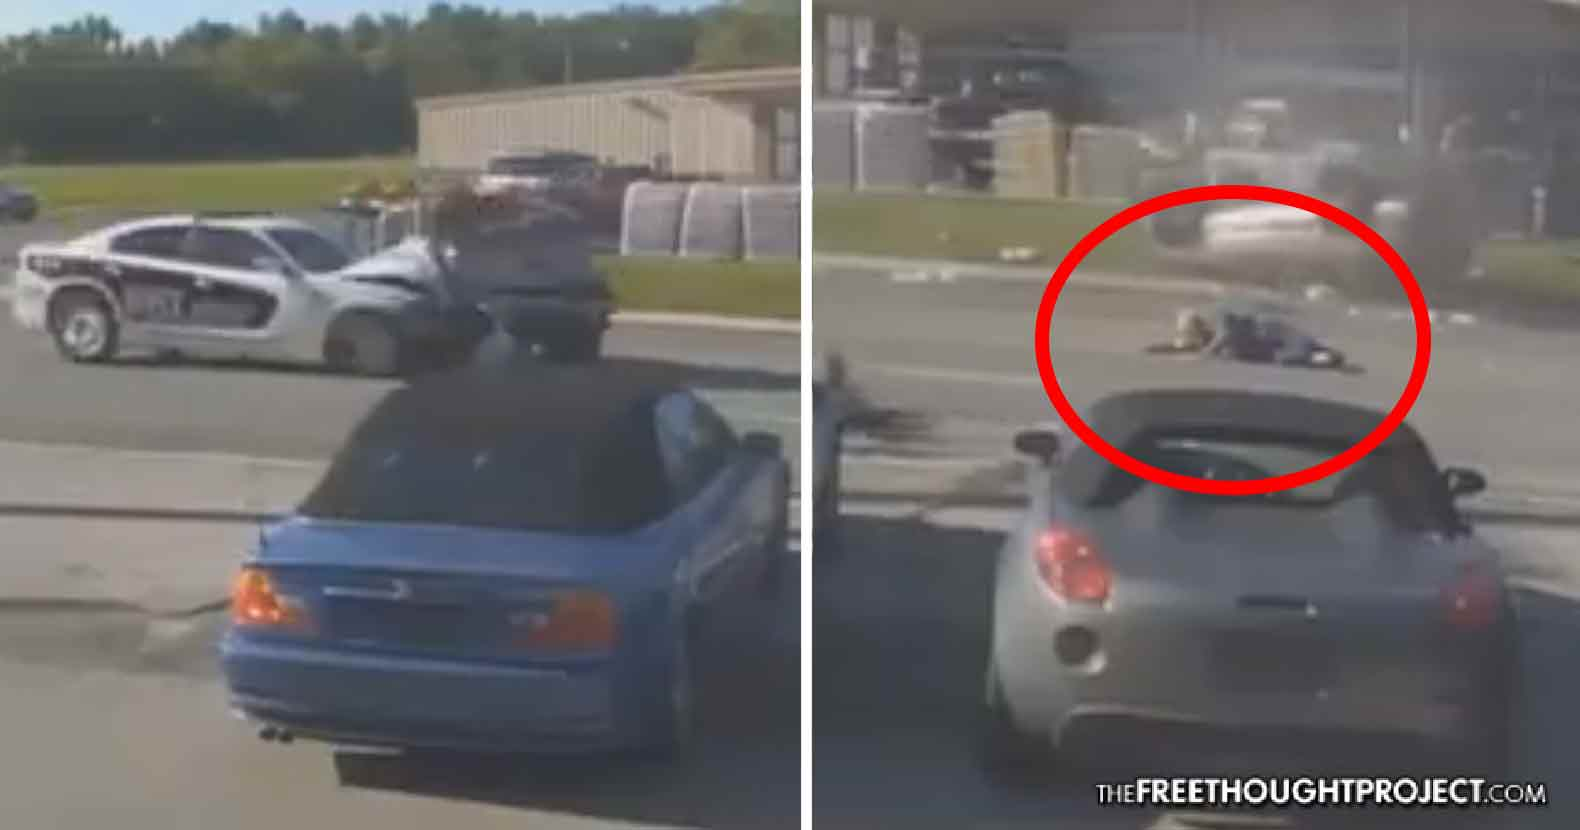 WATCH: Cop Abuses Power, Smashes Into Elderly Couple While Speeding